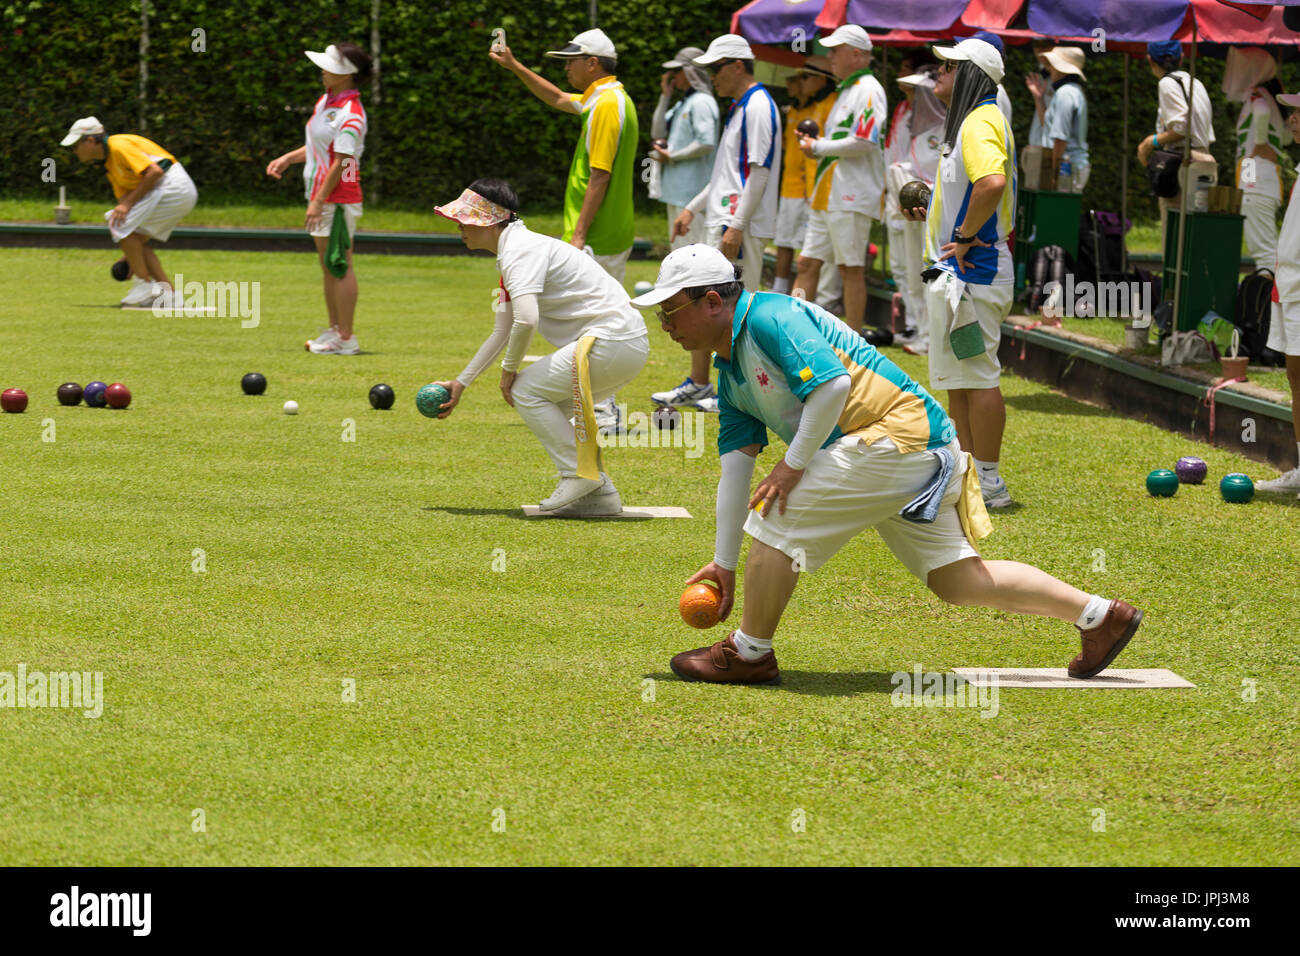 Chinese men and women competing at lawn bowling on a bowling green in Hong Kong - Stock Image